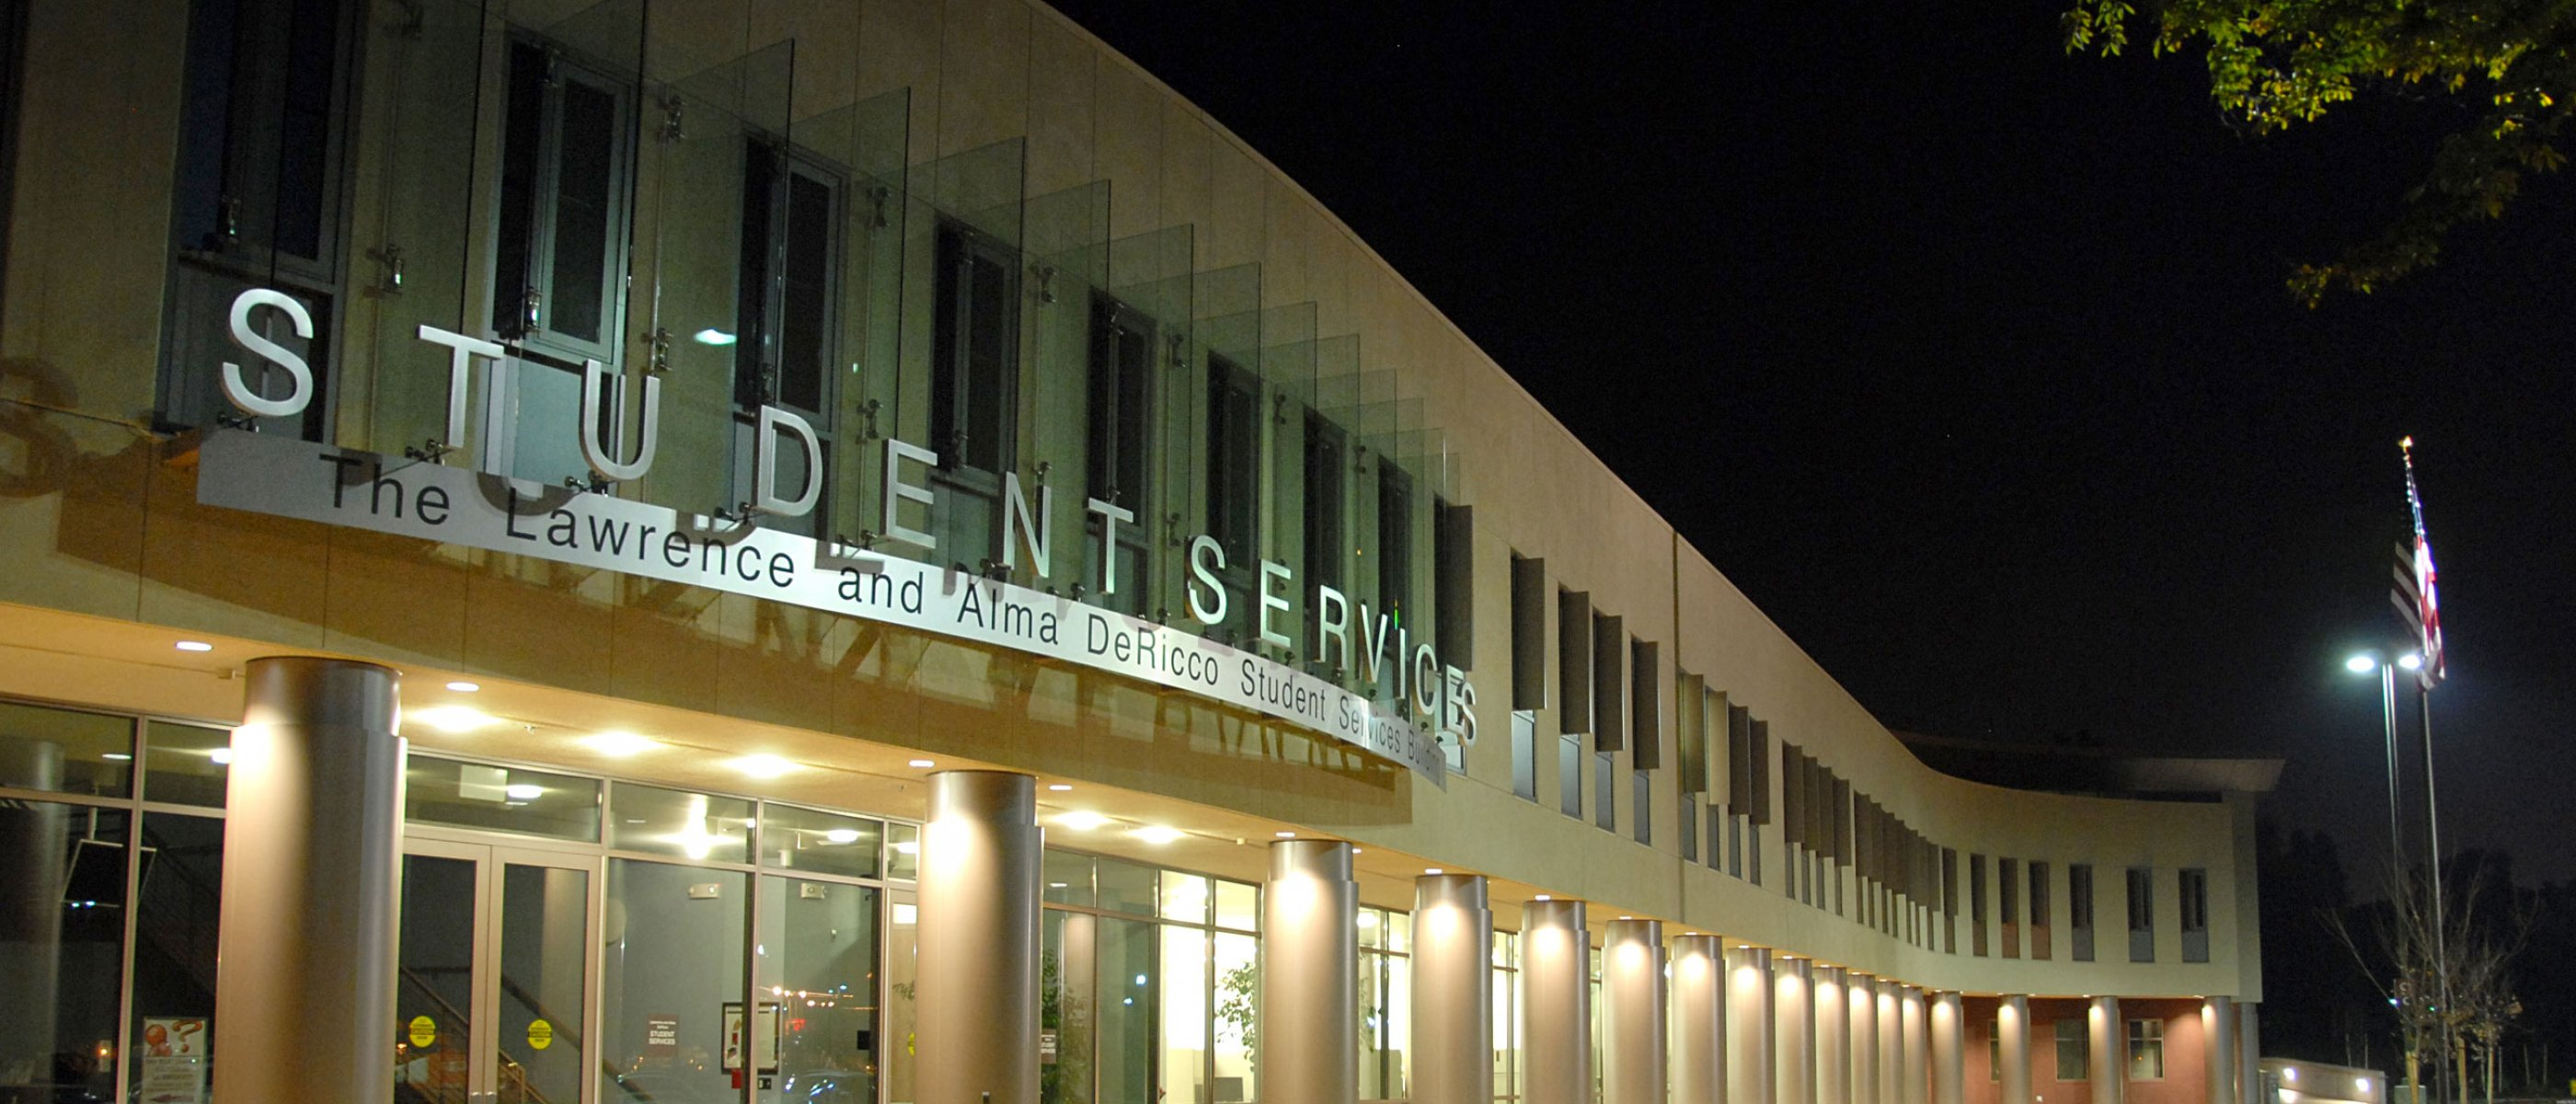 Dericco student services at night